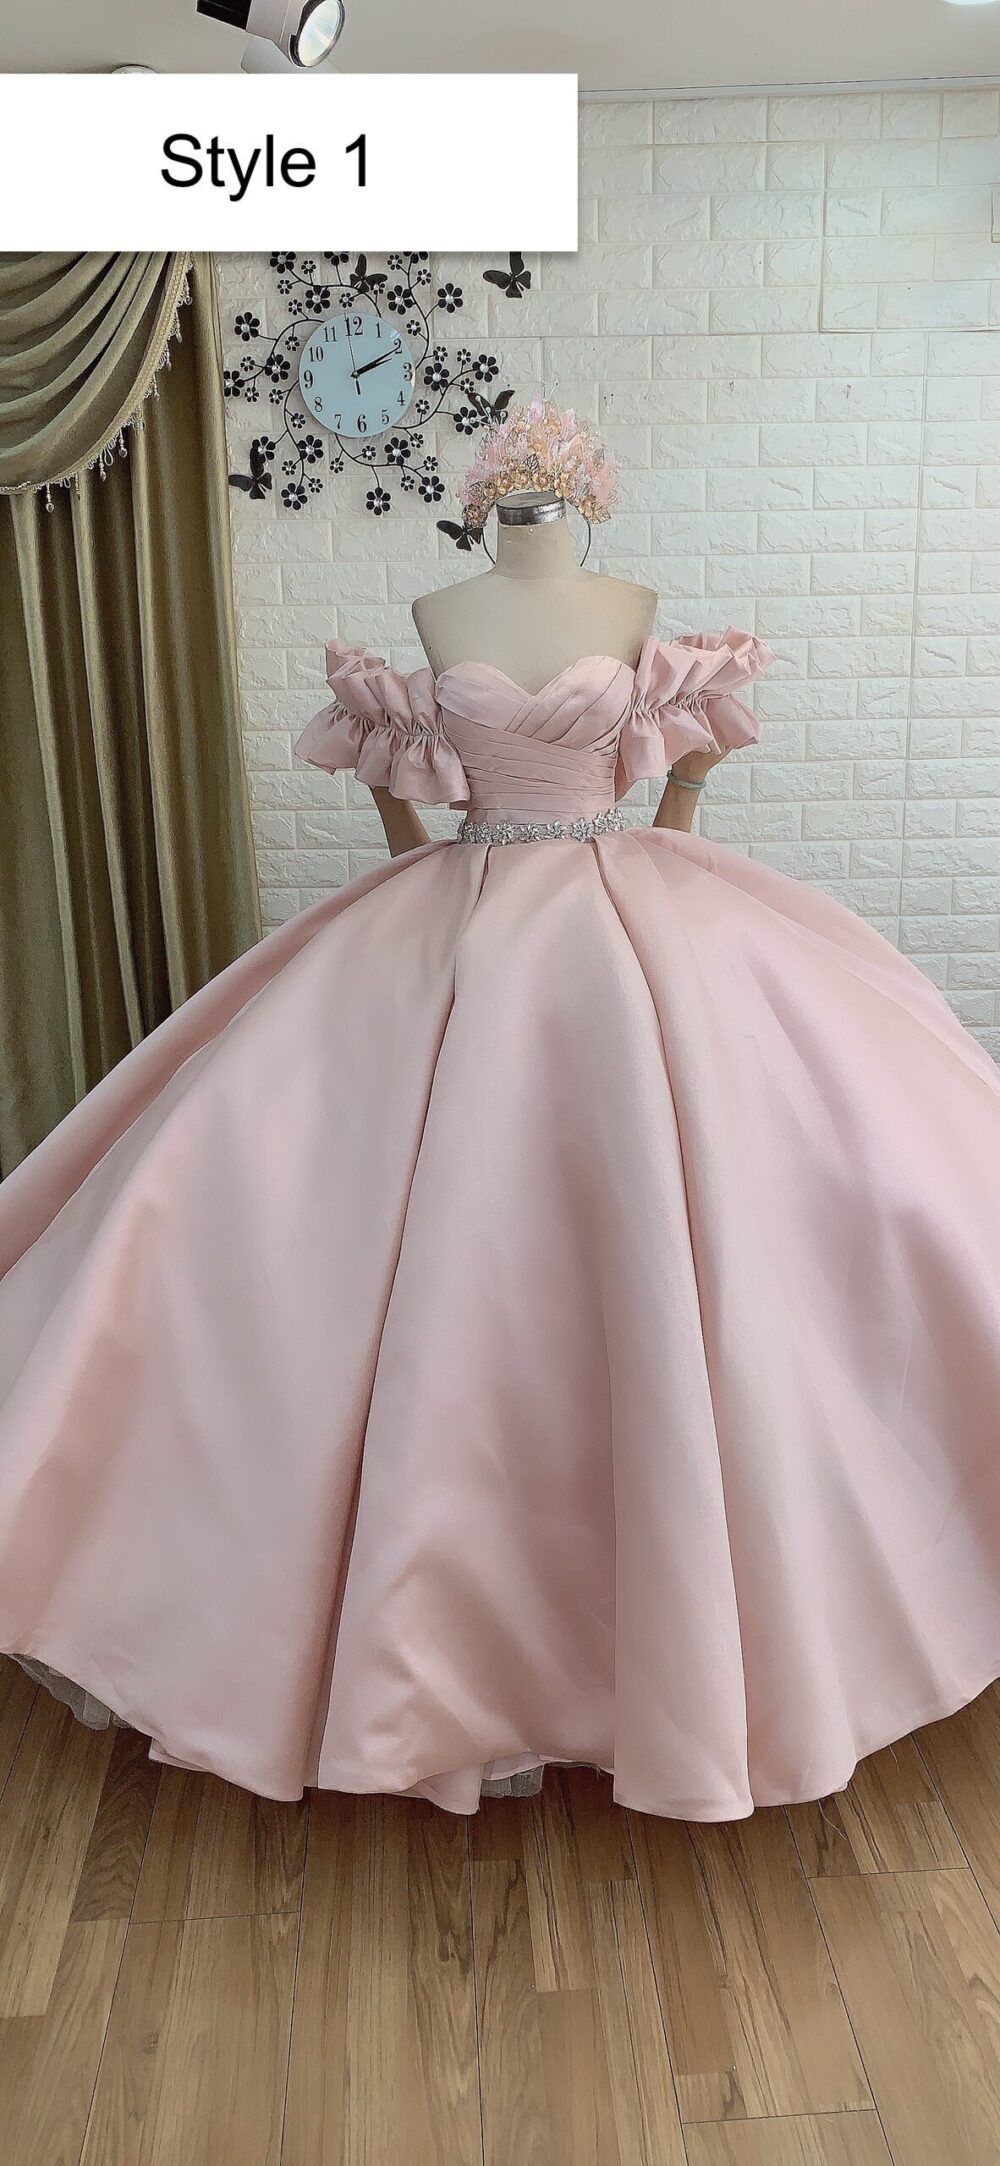 Blush Pink Satin Ball Gown Wedding Dress With Ruffled Sleeves Or Short - Various Styles